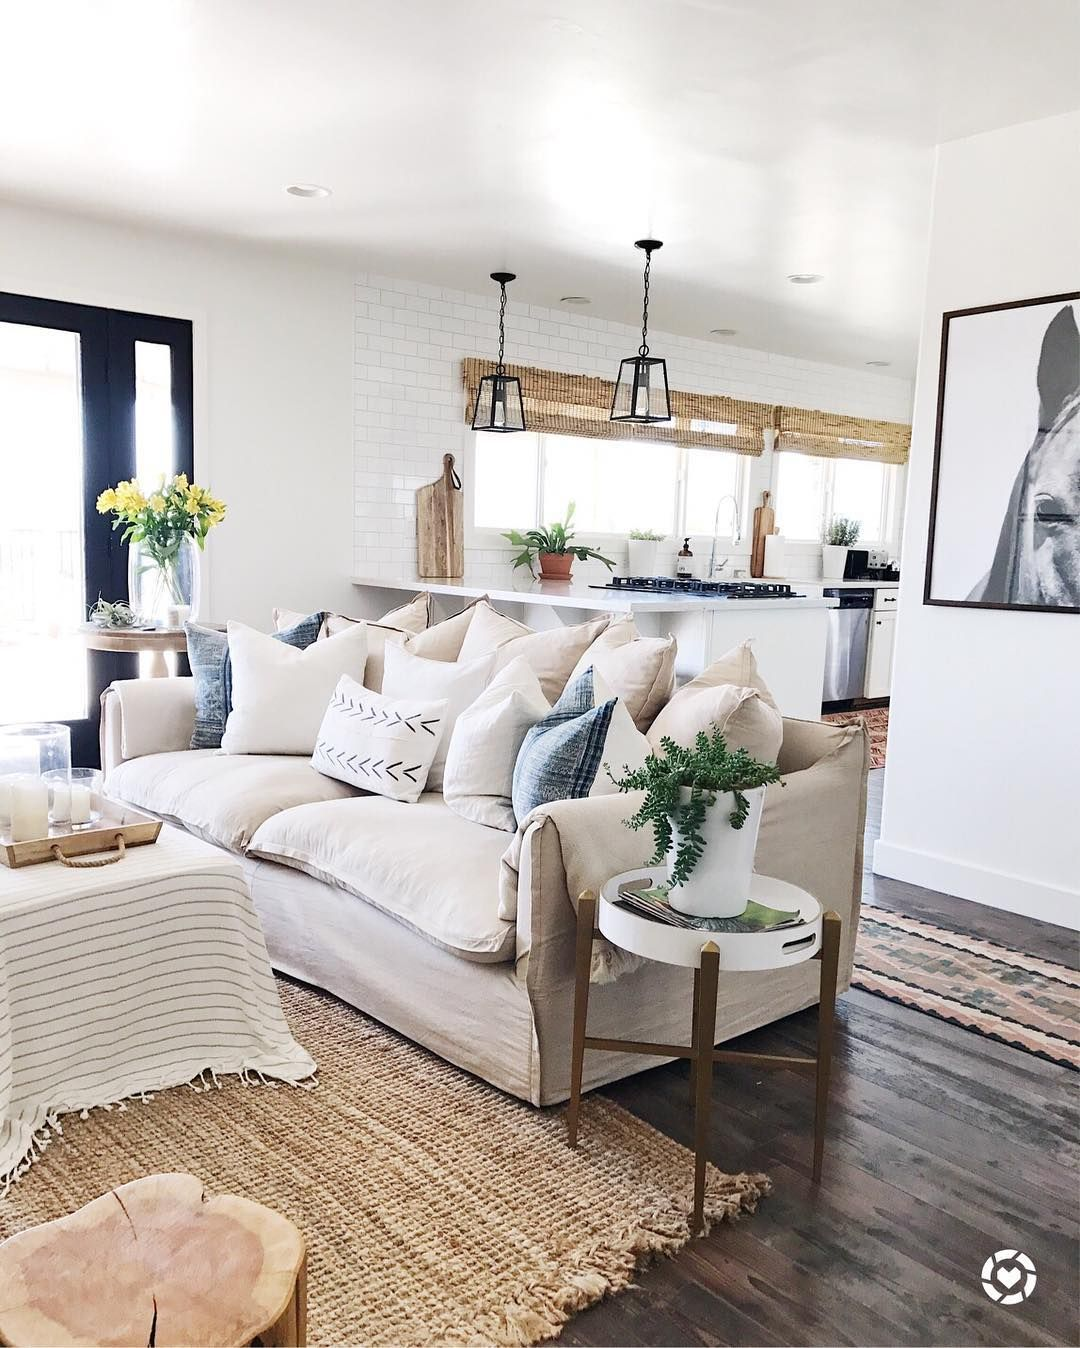 SAVED BY WENDY SIMMONS | living room | Pinterest | Living rooms ...